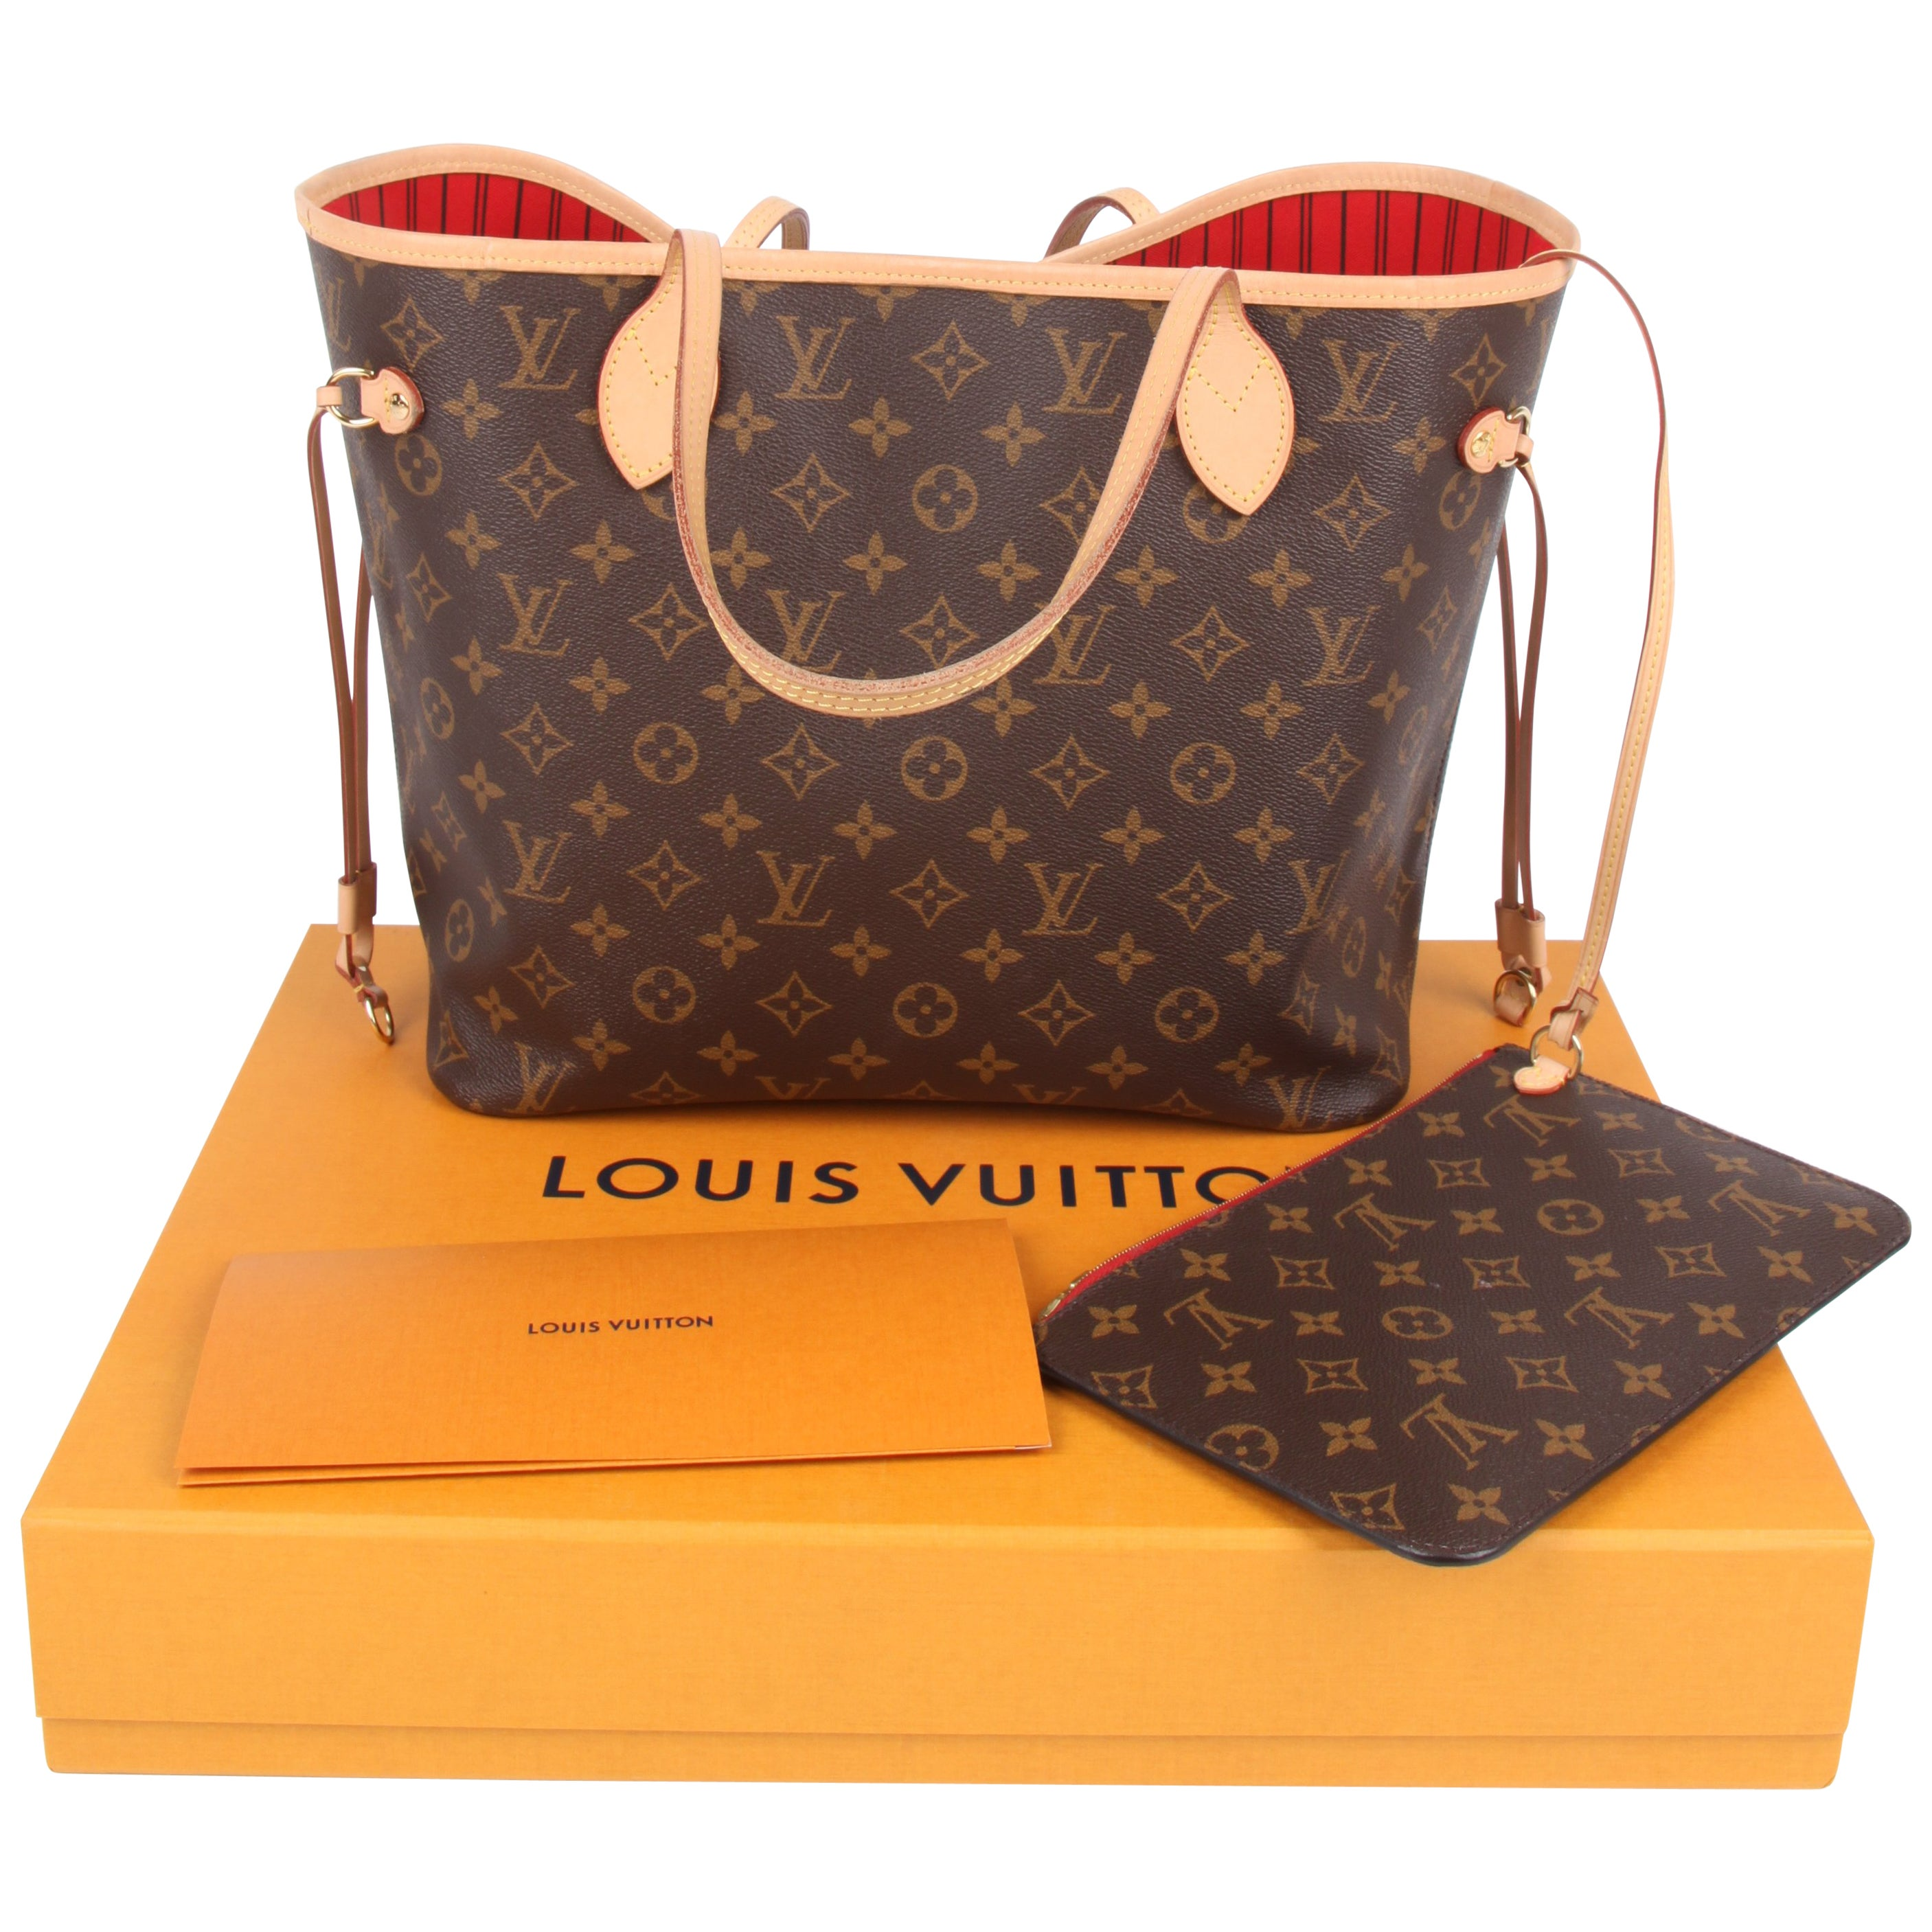 d1c5f2c672d2 Louis Vuitton Neverfull MM Monogram Tote Bag - brown at 1stdibs